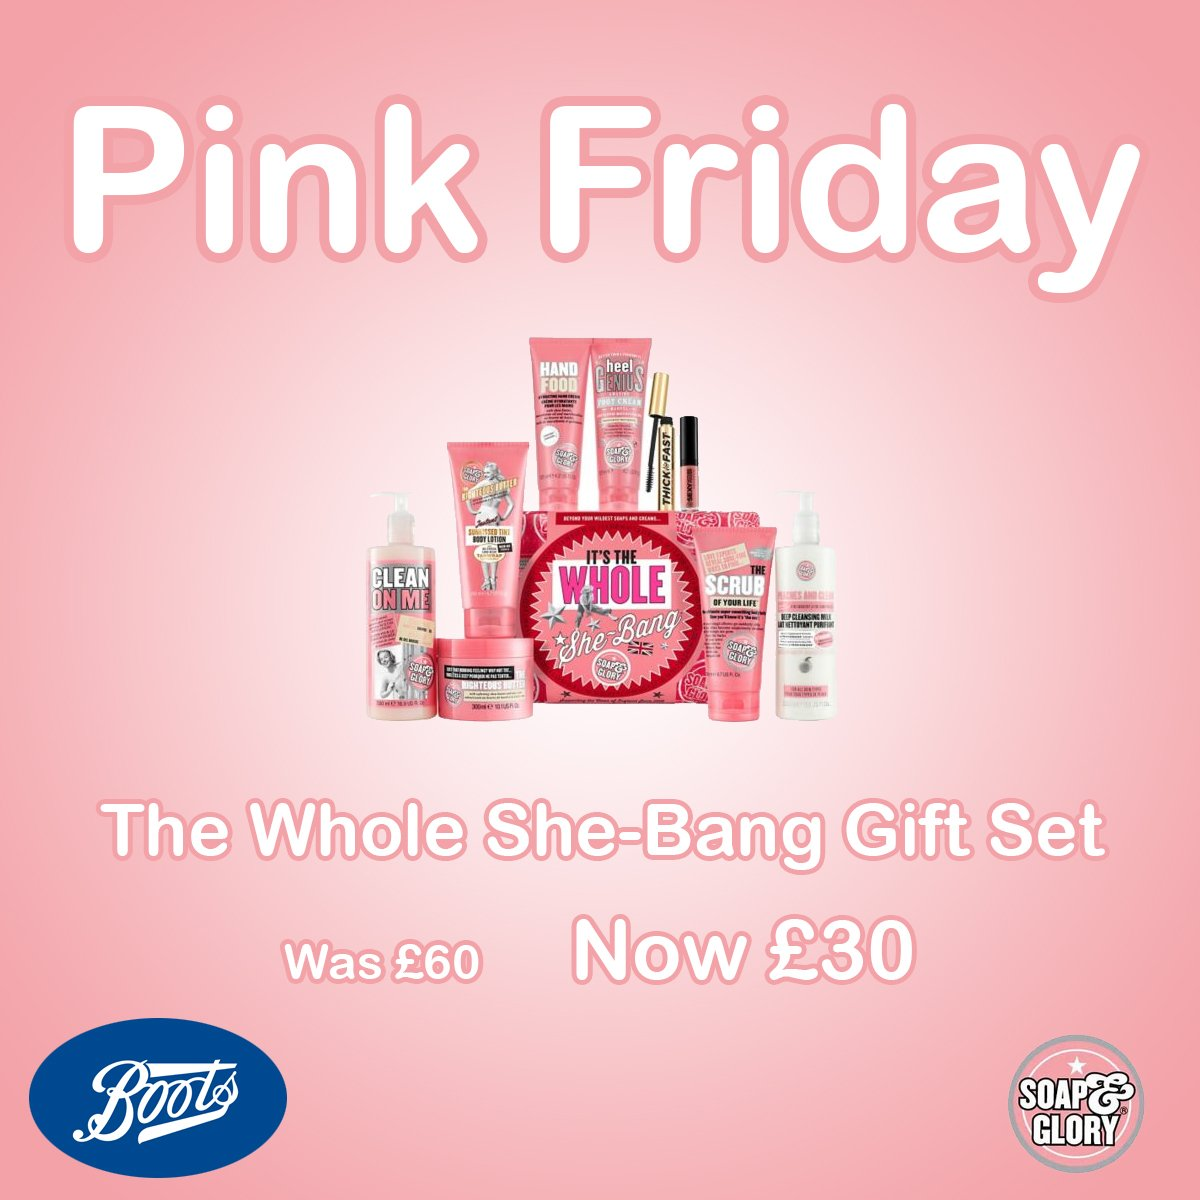 At Boots today: Soap & Glory 'The Whole She-Bang' Gift Set. Was £60, now £30!  Limited stock